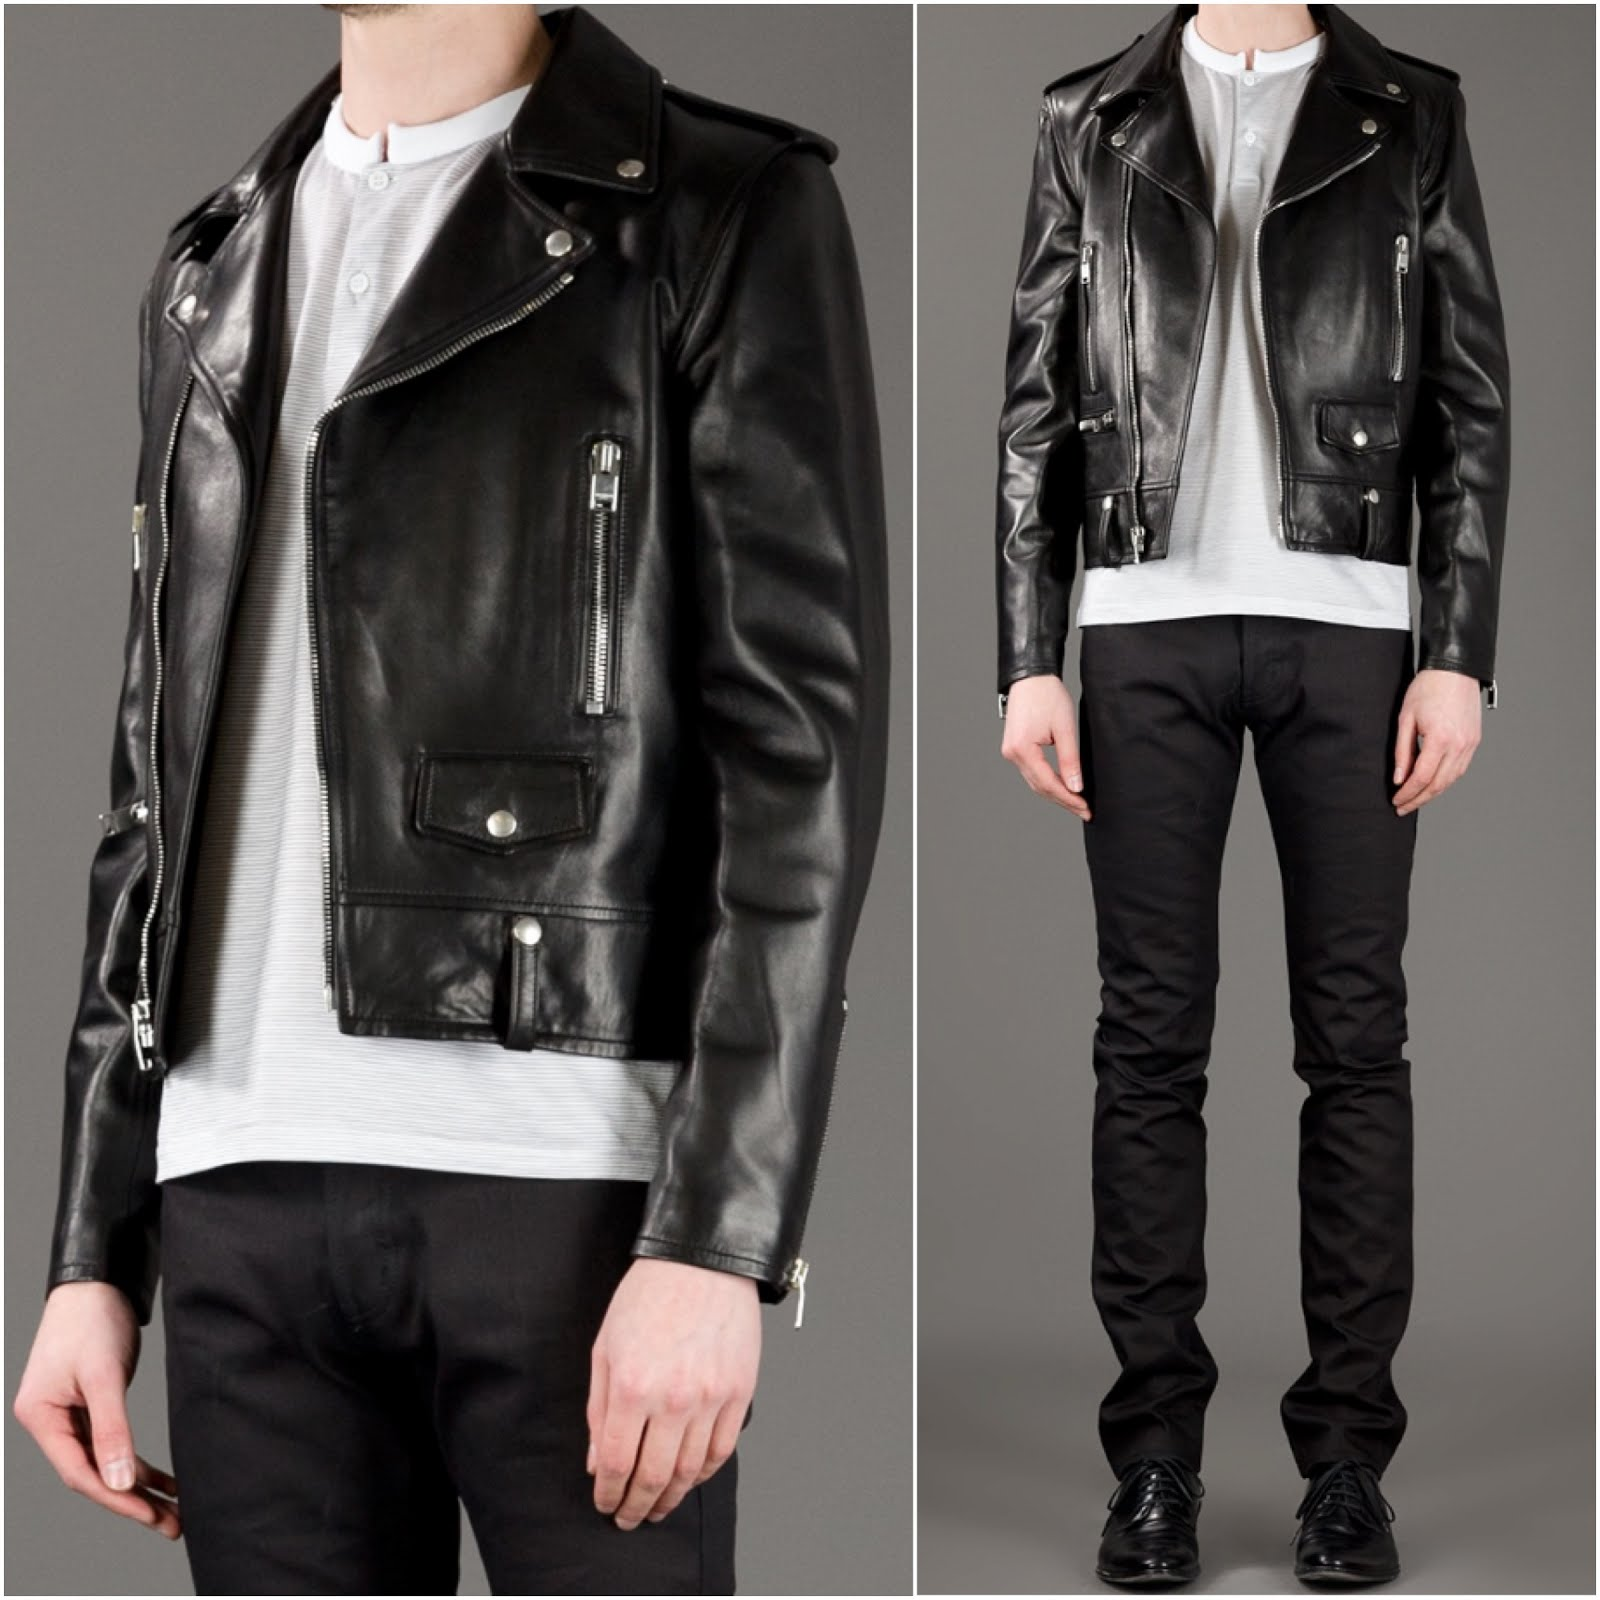 00O00 Menswear Blog: Adam Levine in Saint Laurent leather biker jacket - 102.7 KIIS FM's Wango Tango 2013